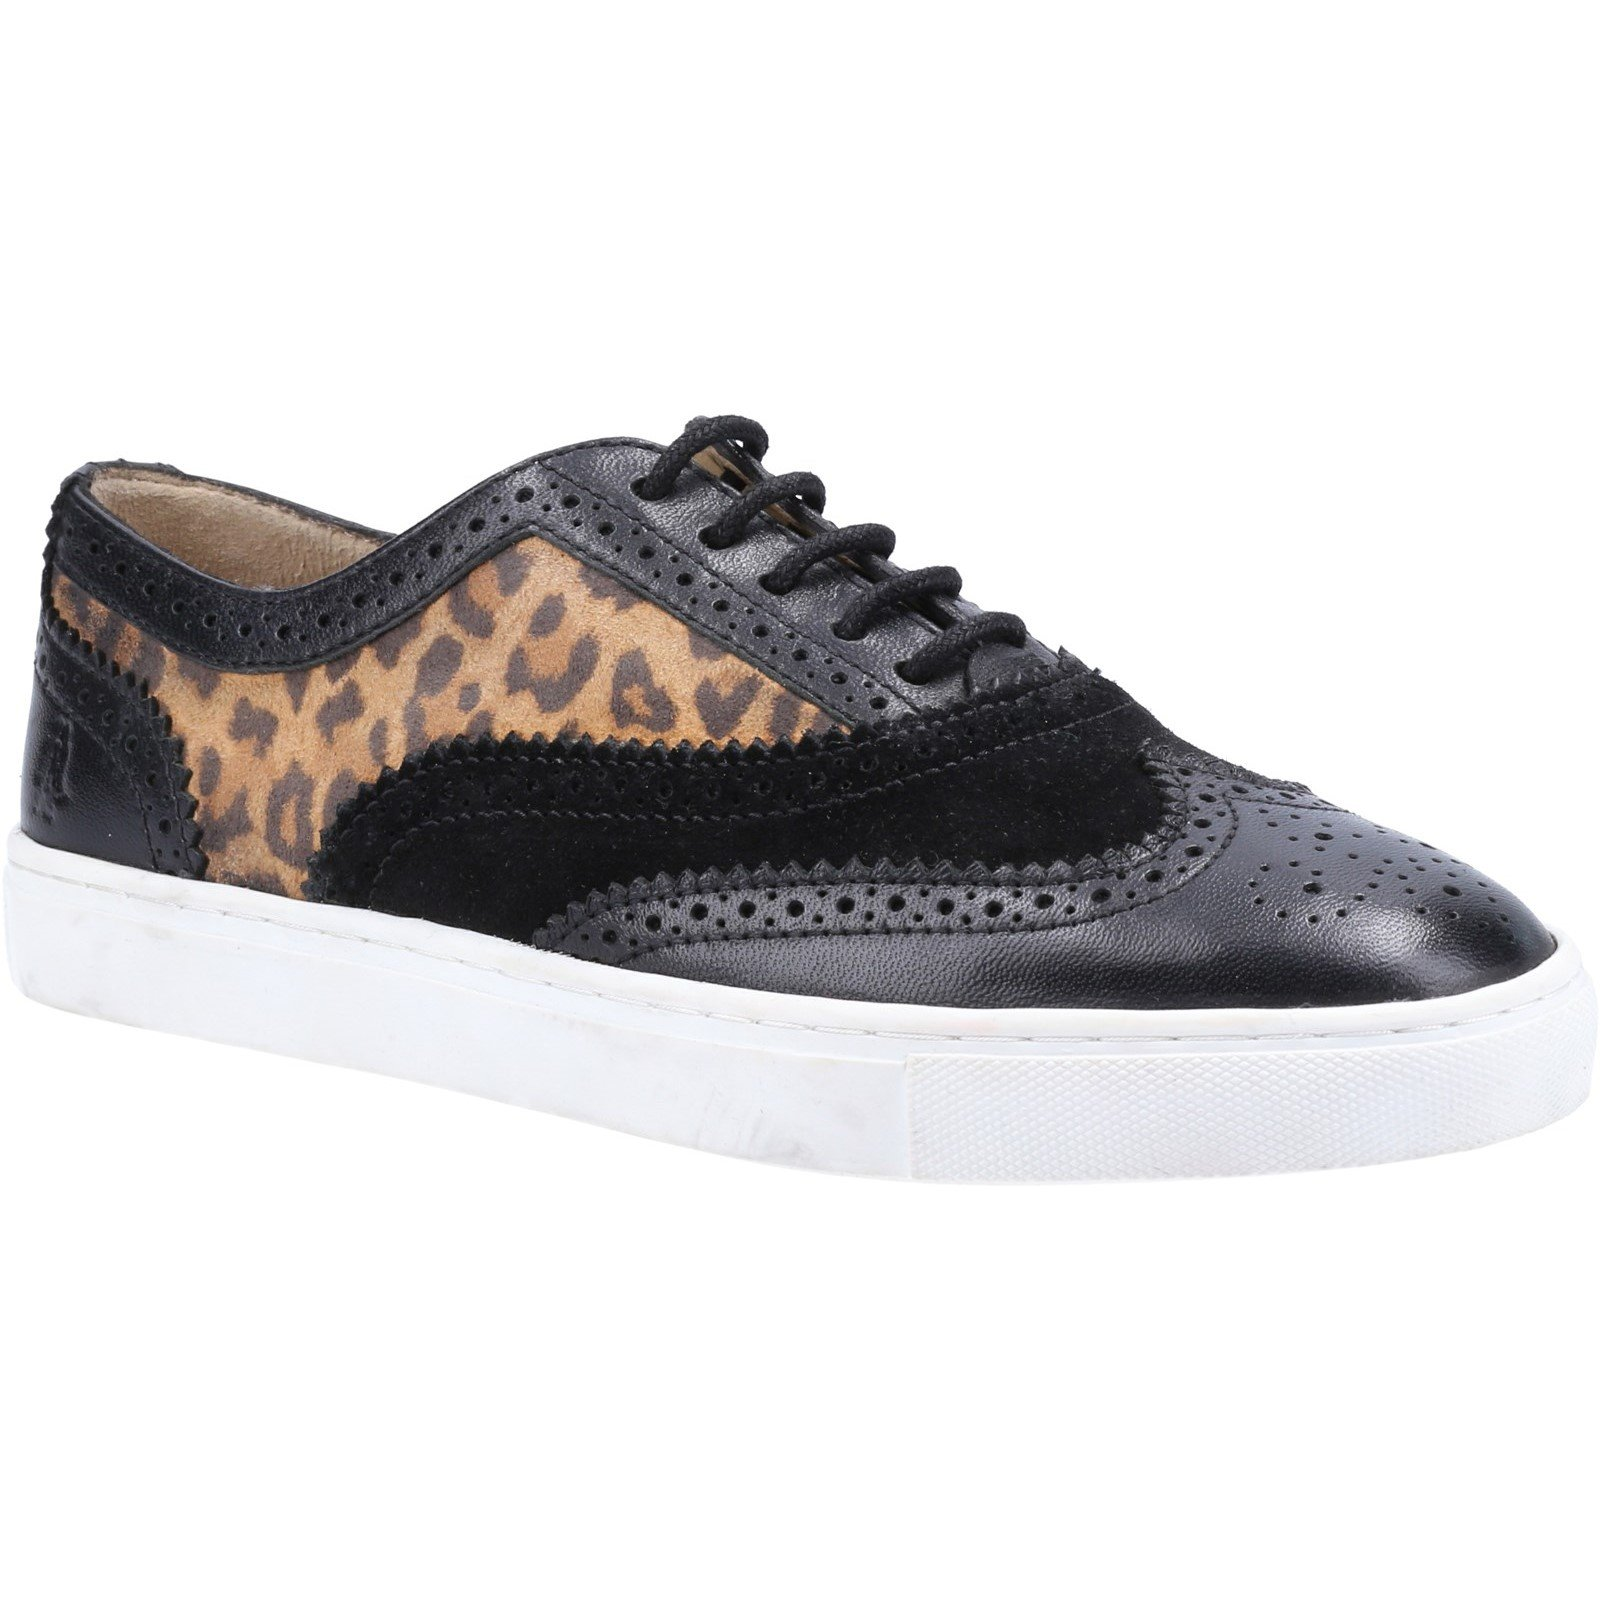 Hush Puppies Women's Tammy Trainer Various Colours 32847 - Leopard 8